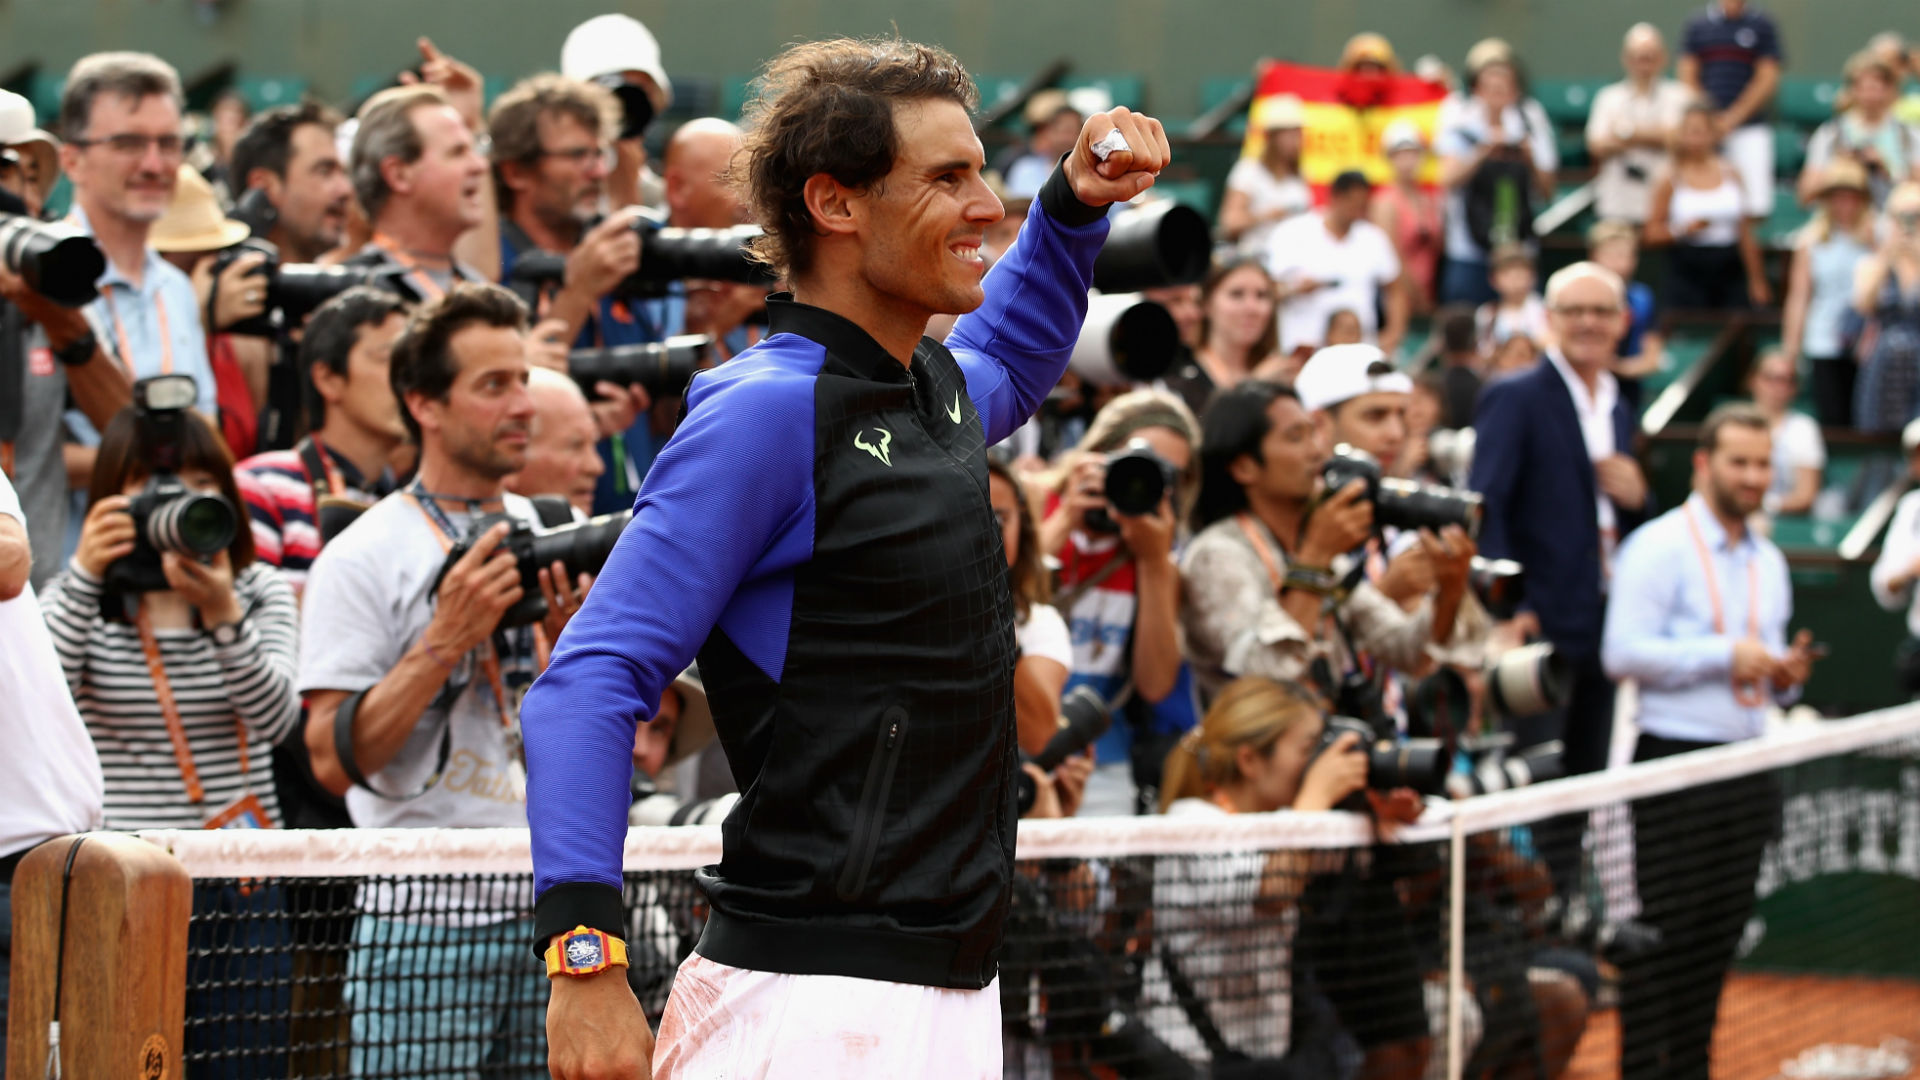 Rafael Nadal wins record 10th title